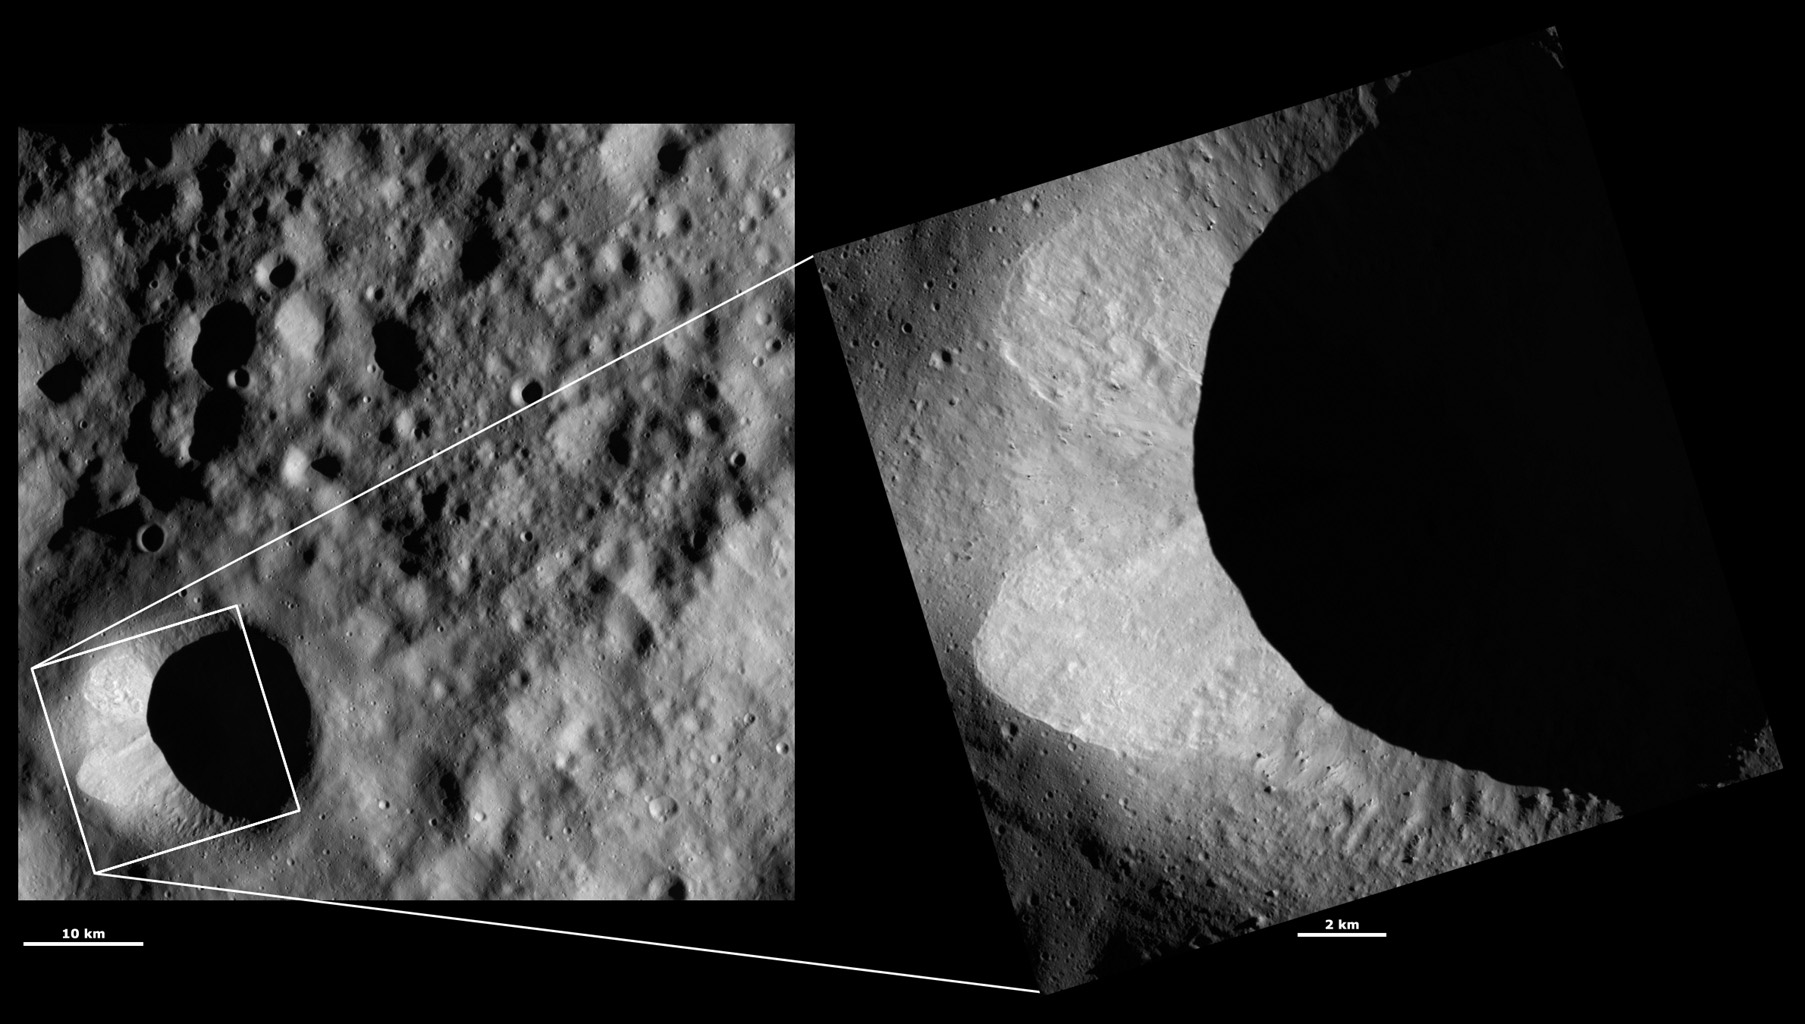 HAMO and LAMO Images of Scantia Crater